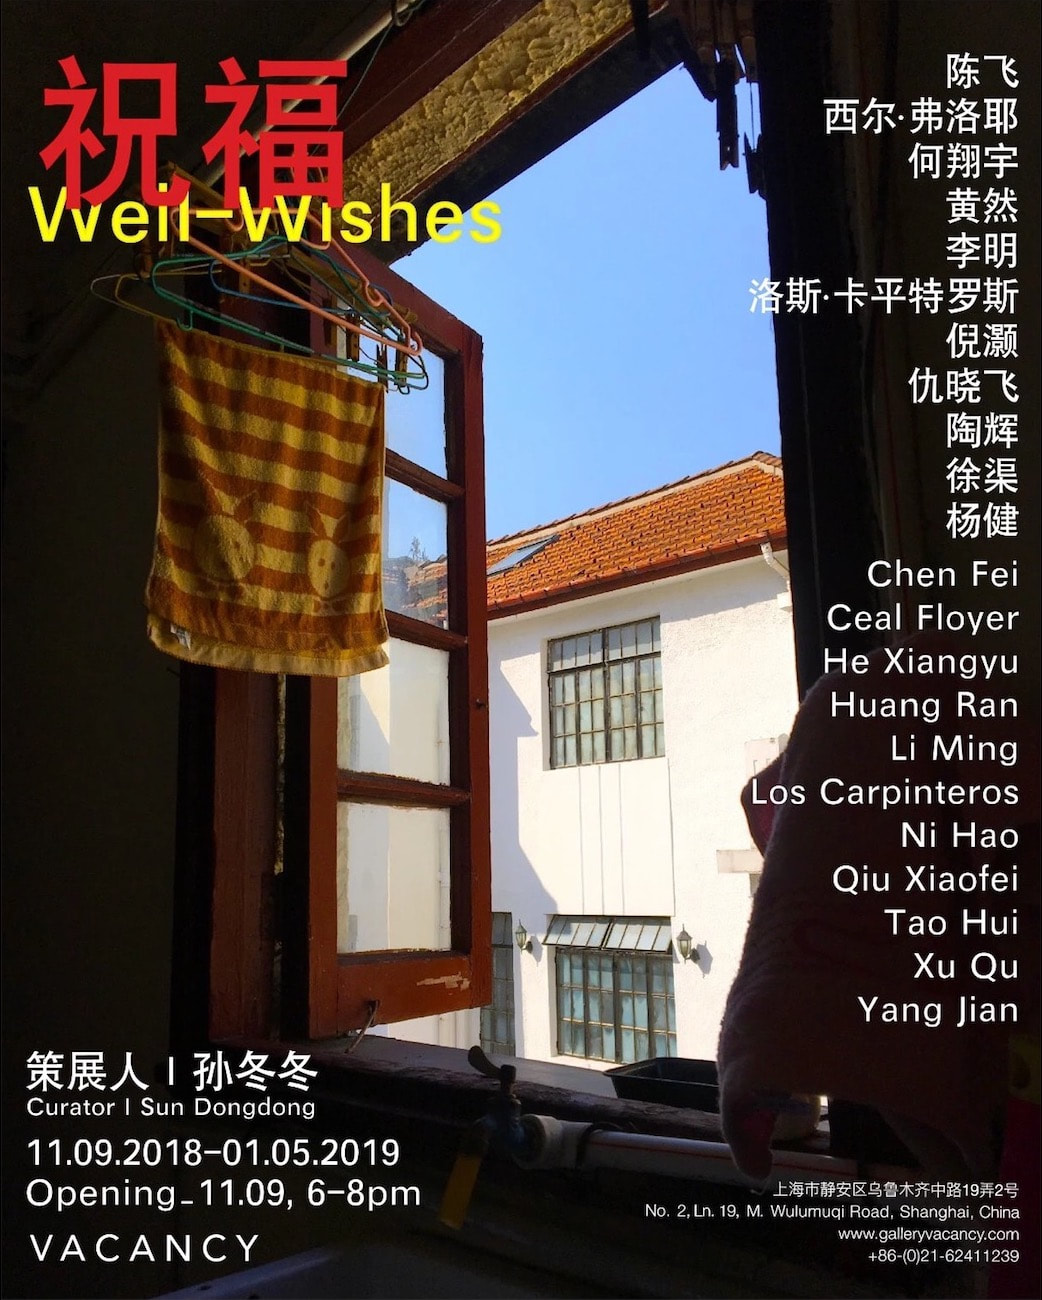 Gallery Vacancy Exhibition: 2018, Well-Wishes, Group exhibition: Chen Fei, Ceal Floyer, He Xiangyu, Huang Ran, Li Ming, Los Carpinteros, Ni Hao, Qiu Xiaofei, Tao Hui, Xu Qu, and Yang Jian, November 9, 2018–January 5, 2019